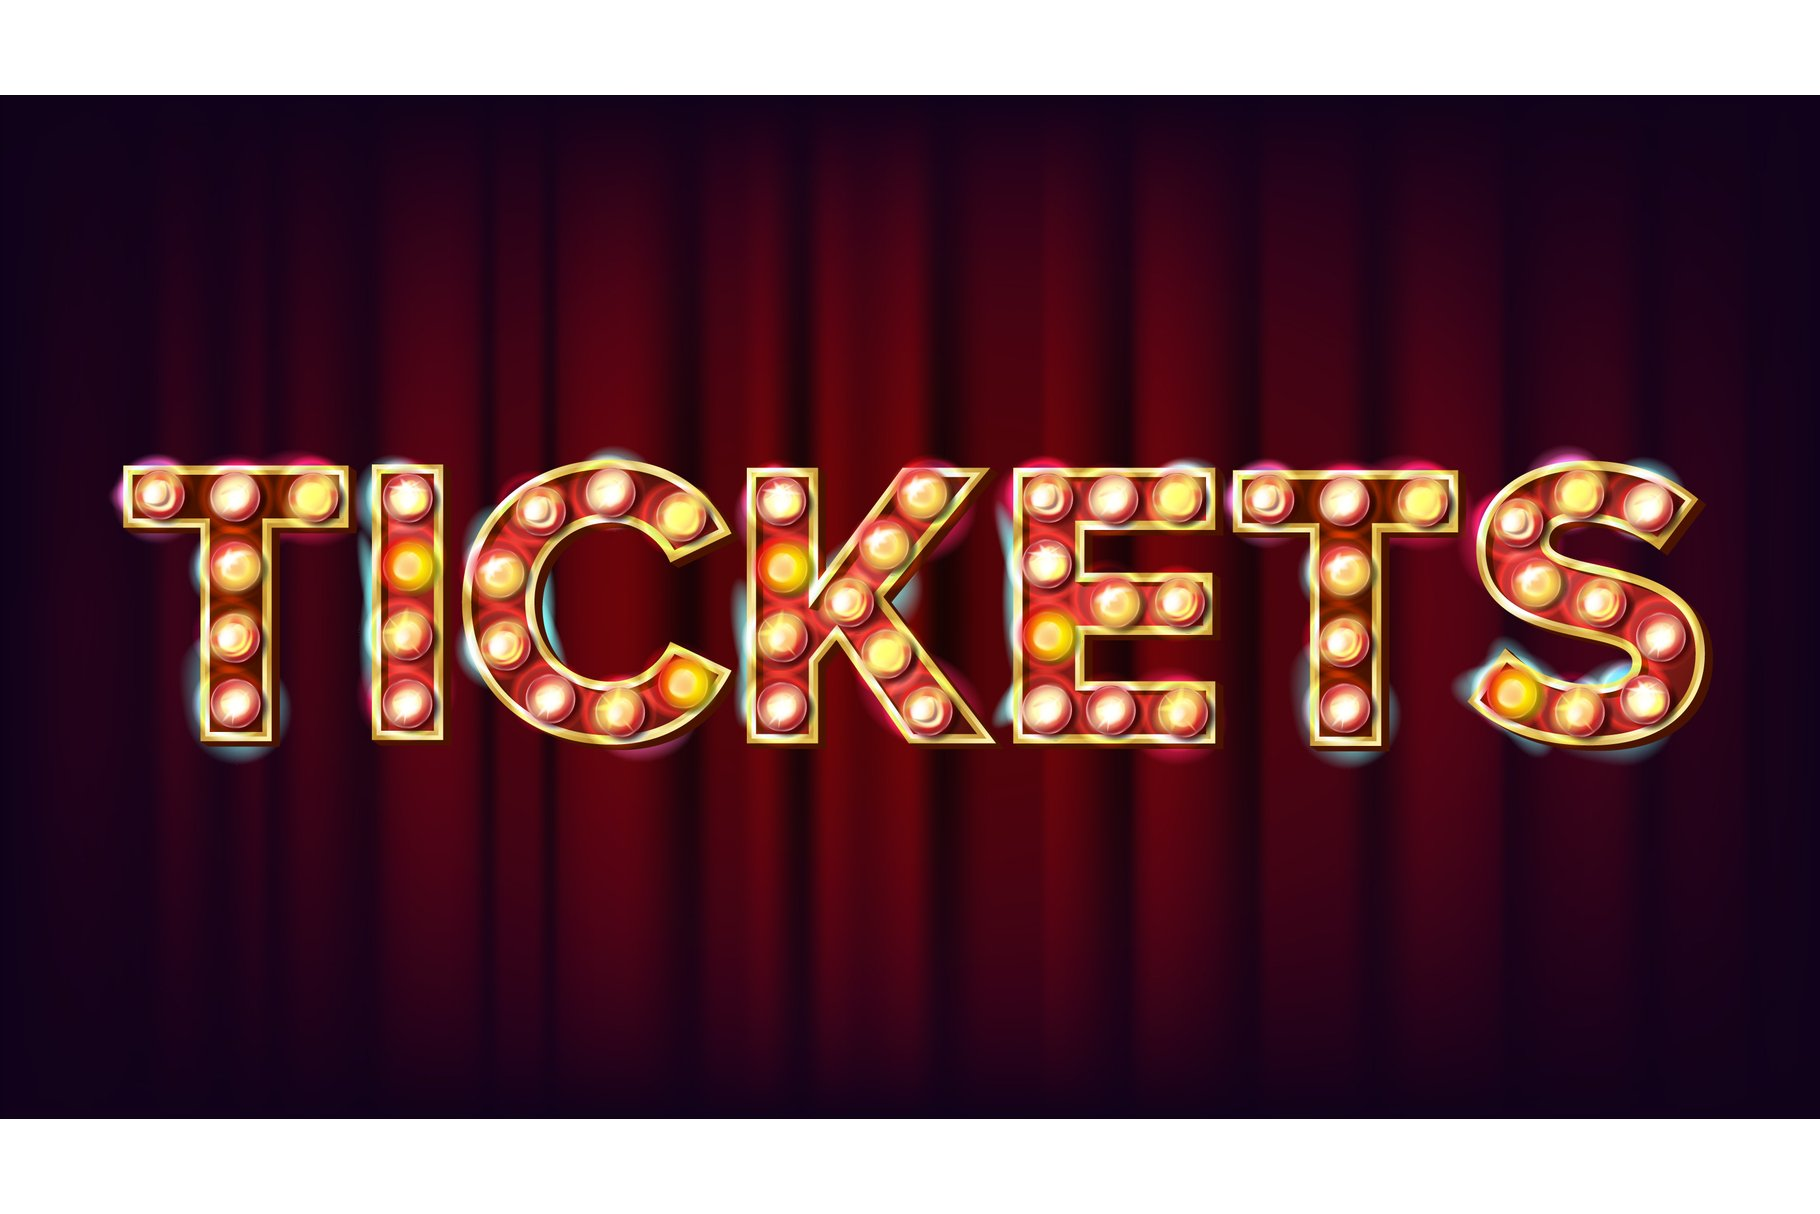 Tickets Banner Sign Vector. For Arts Festival Events Design. example image 1